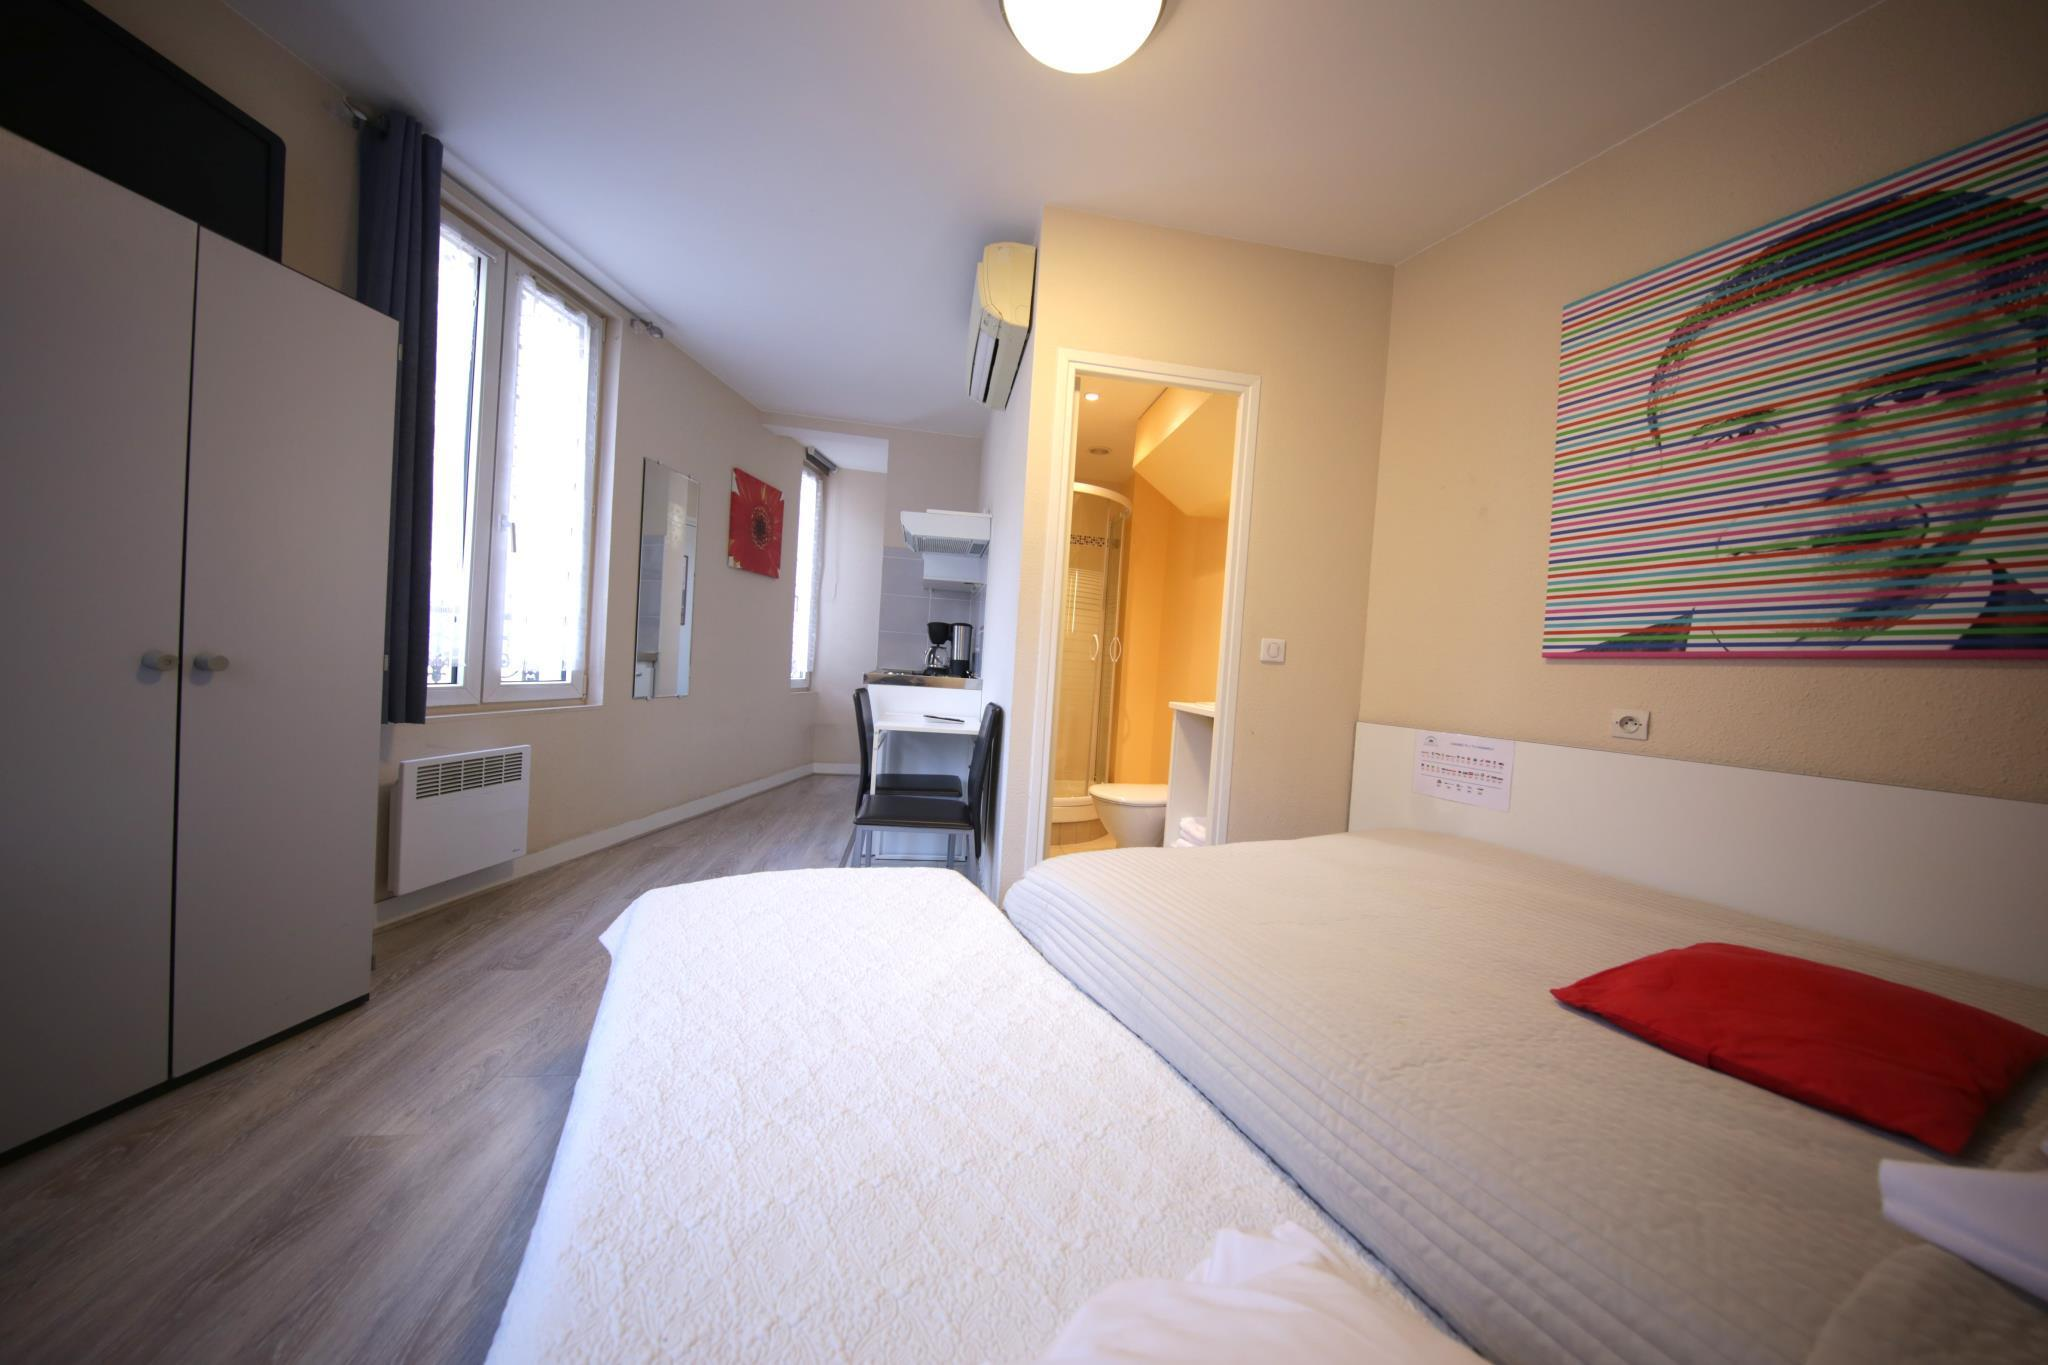 Estudi de luxe - Rue de Paris (2 adults) (Luxury Studio - Rue de Paris (2 Adults))